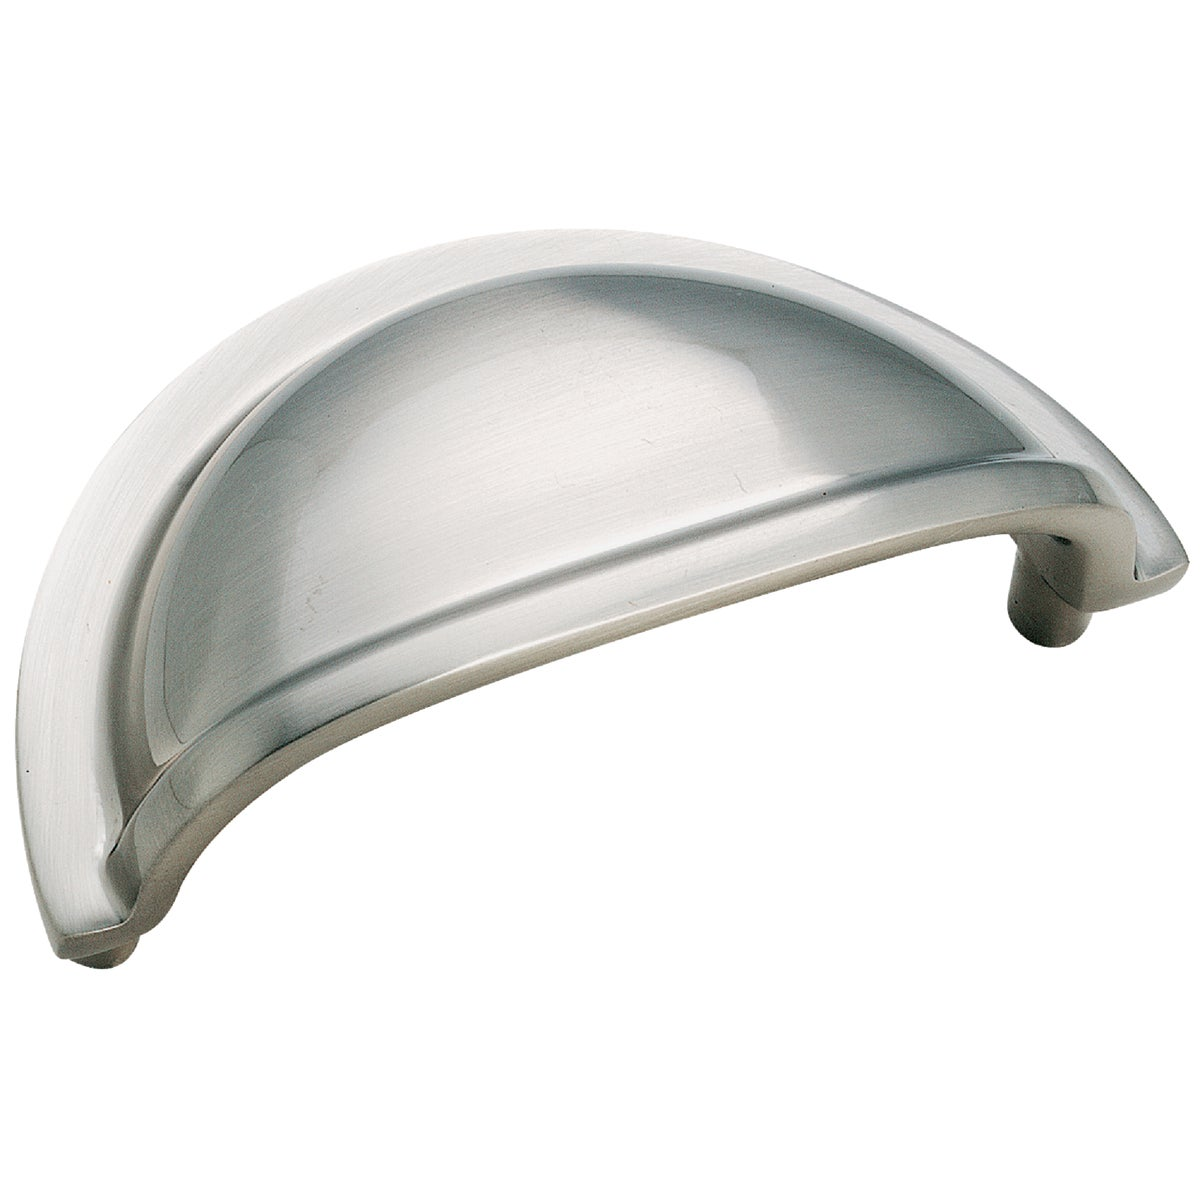 STERLING NICKEL PULL - BP4235-G9 by Amerock Corporation